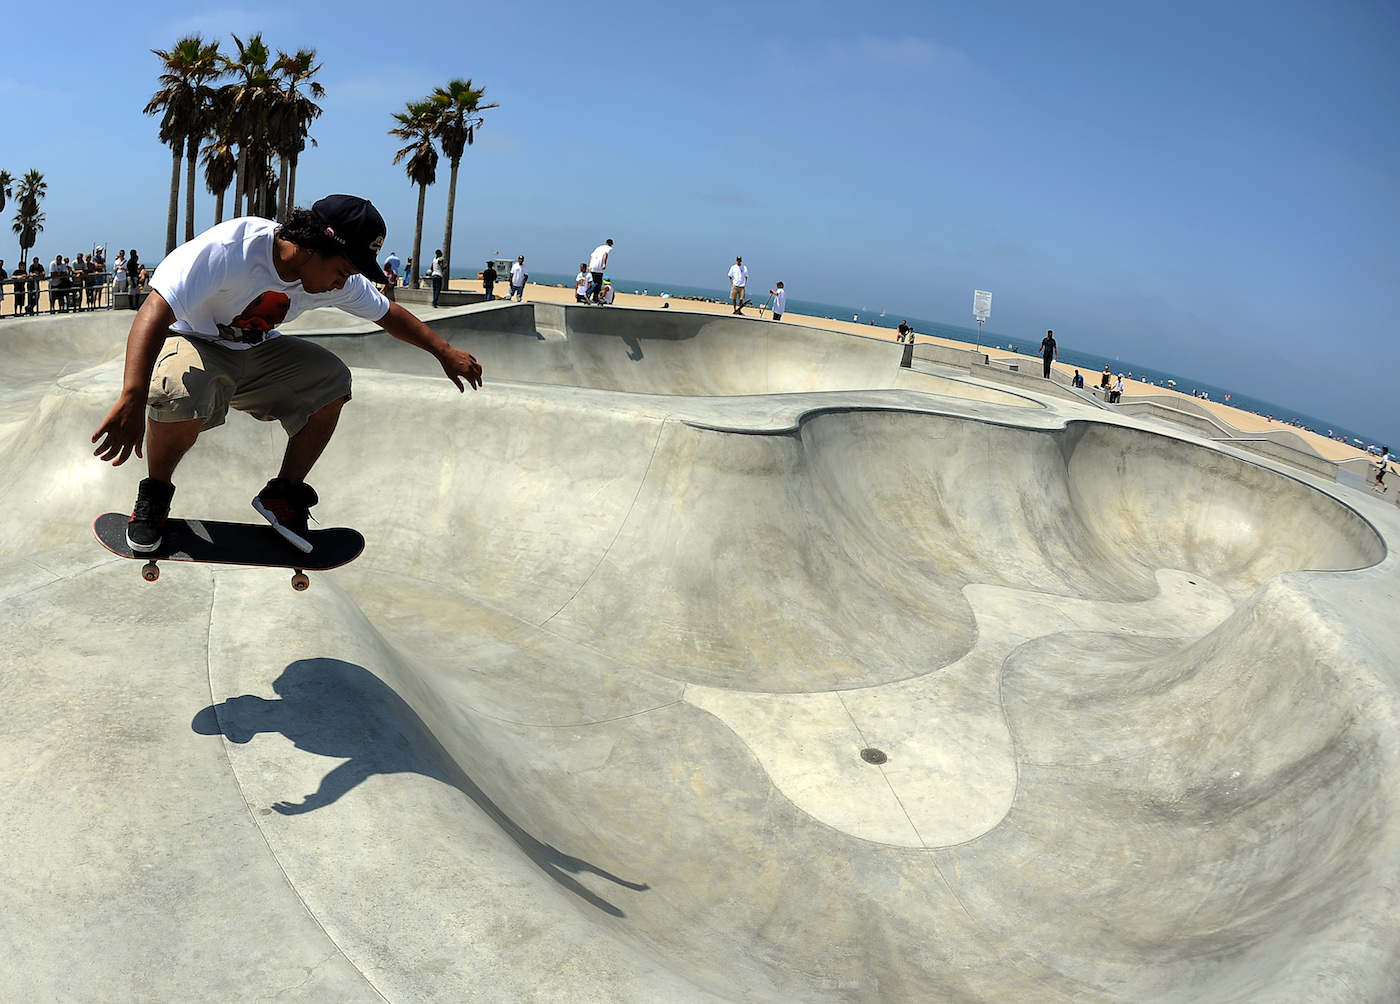 "A young man jumps with his skateboard at Venice Beach Skateboard Park on July 4, 2011 in Venice, California. The first skateboards to reach public notice came out of the surfing craze of the early 1960s, developed to help surfers practice when waves were unfavorable. The first prototypes were simple wooden boards with roller-skate wheels attached, and the practice was sometimes referred to as ""sidewalk surfing."" The surfing group Jan and Dean even had a minor hit called ""Sidewalk Surfing"" in 1964. By the mid-1980s skateboards were mass produced and sold throughout the United States. AFP PHOTO / GABRIEL BOUYS (Photo credit should read GABRIEL BOUYS/AFP/Getty Images)"